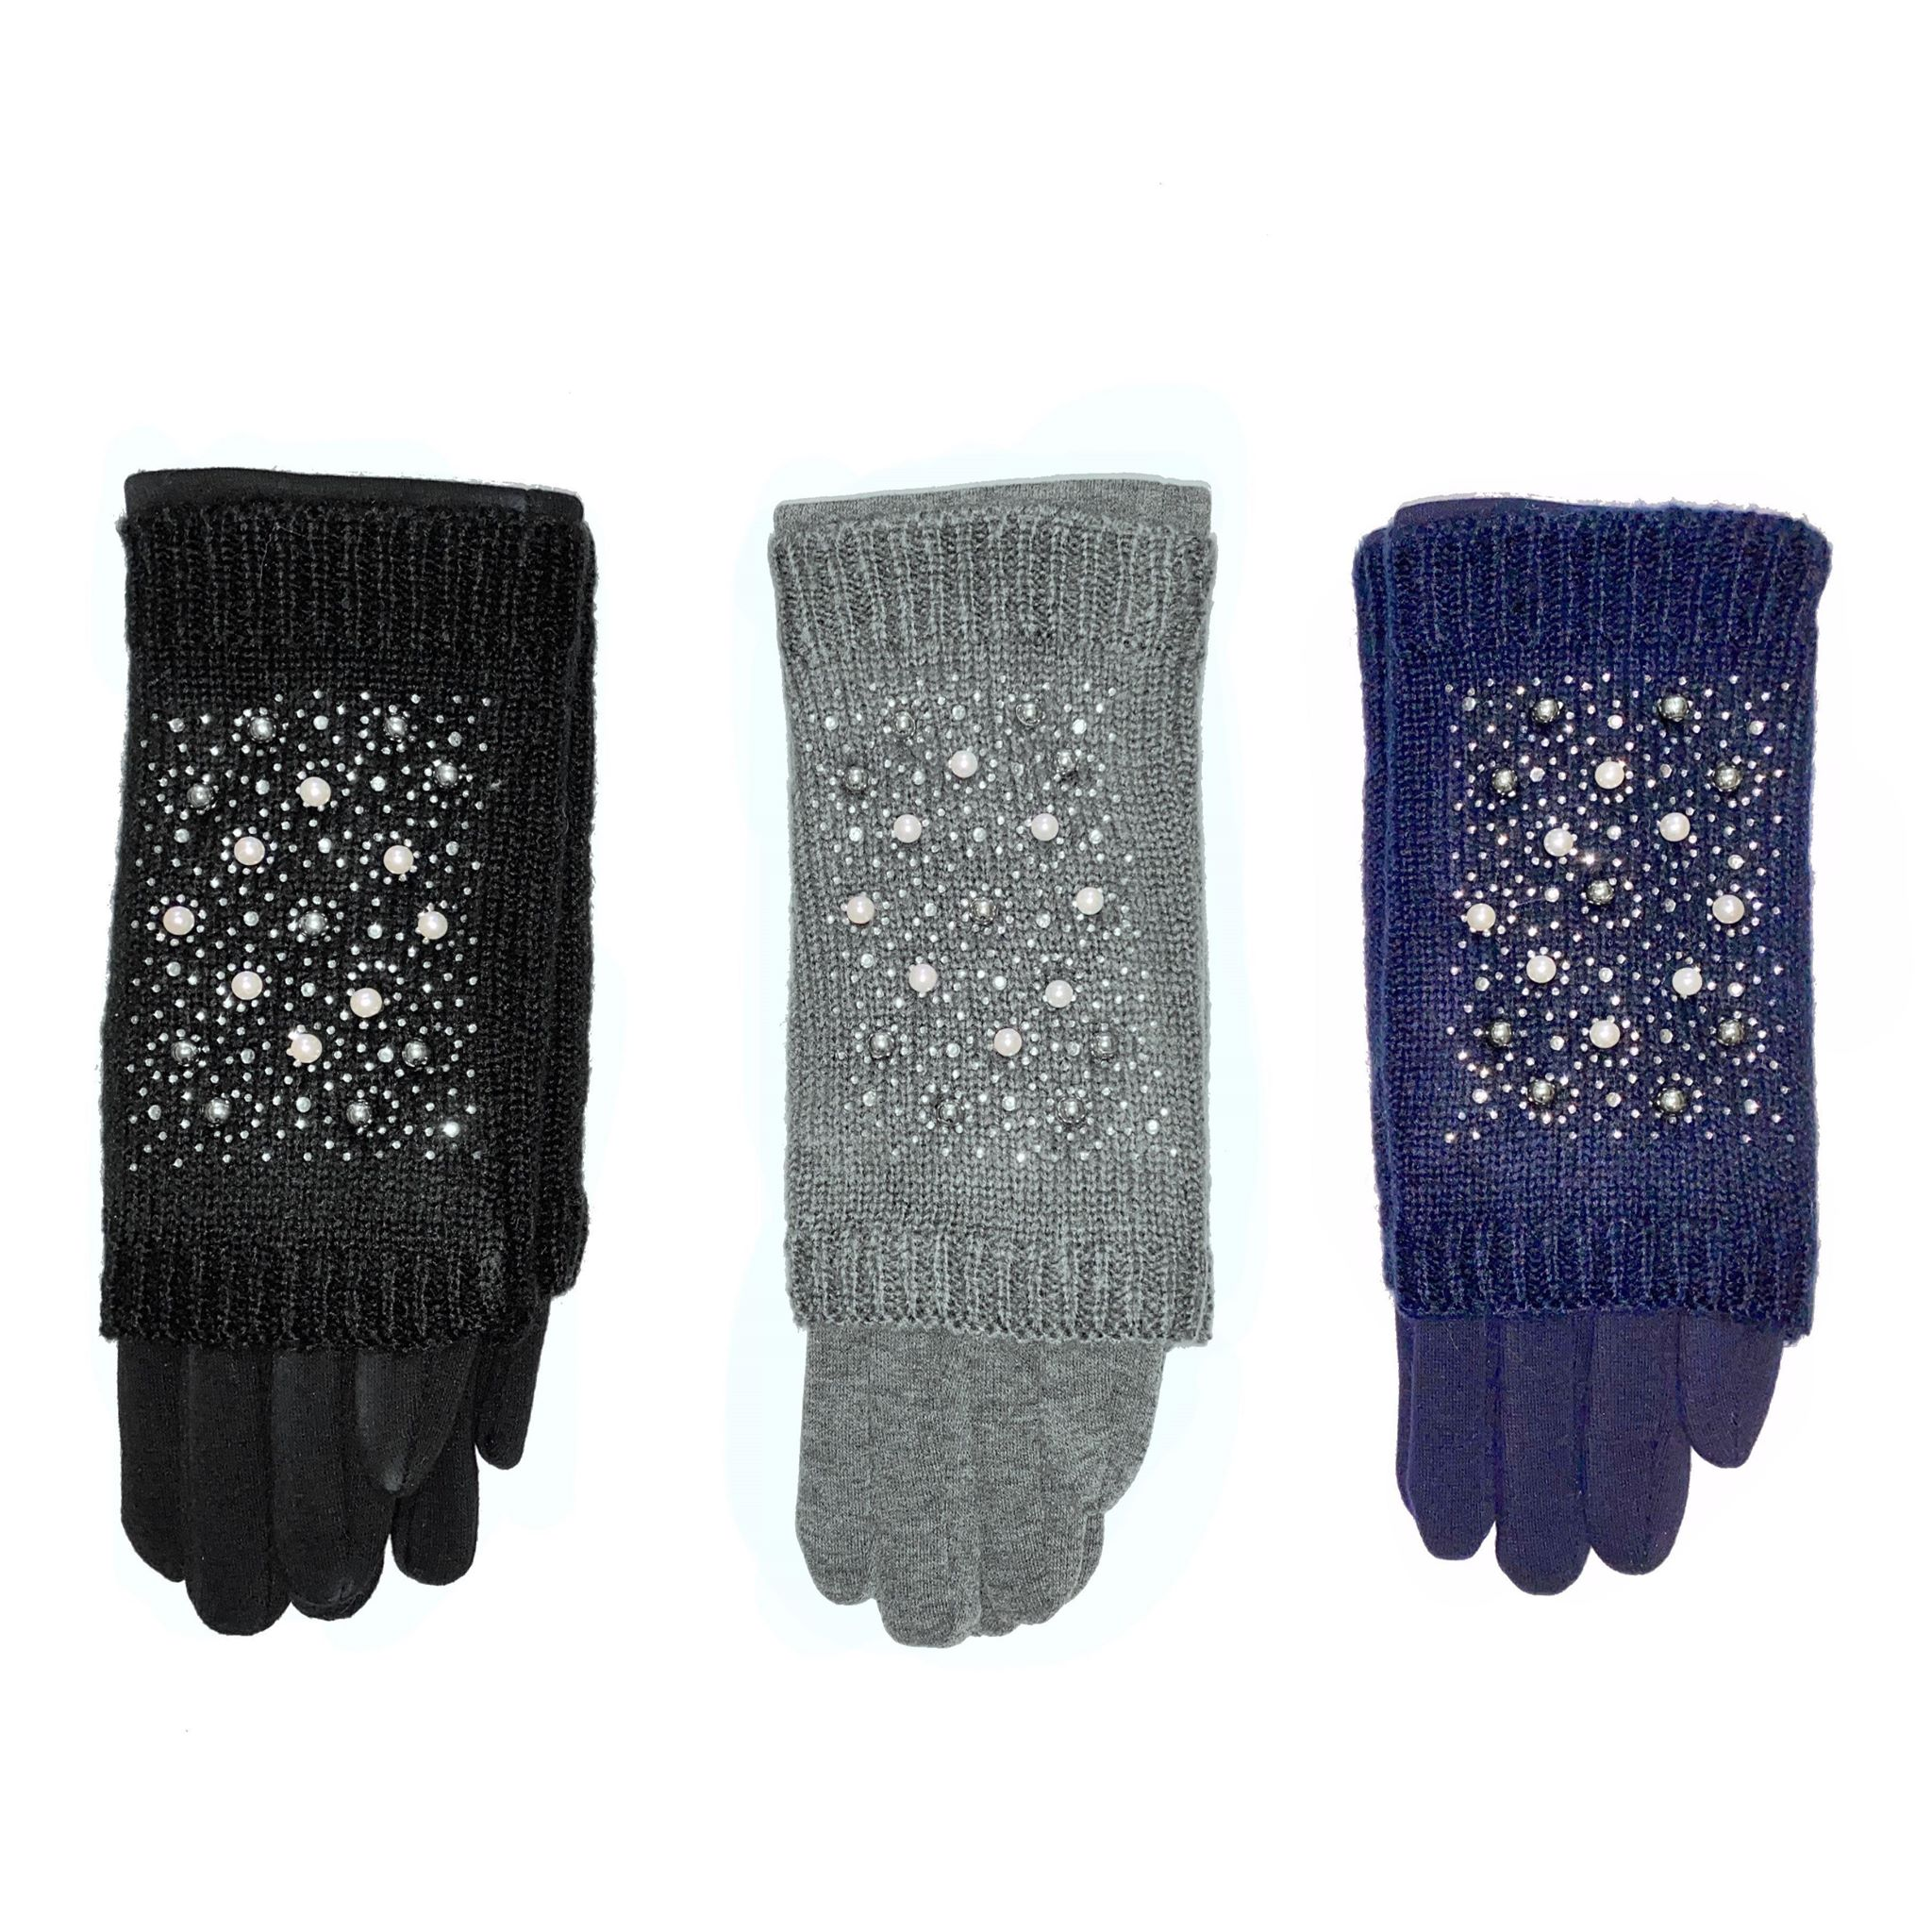 Super-soft Gloves & Hats